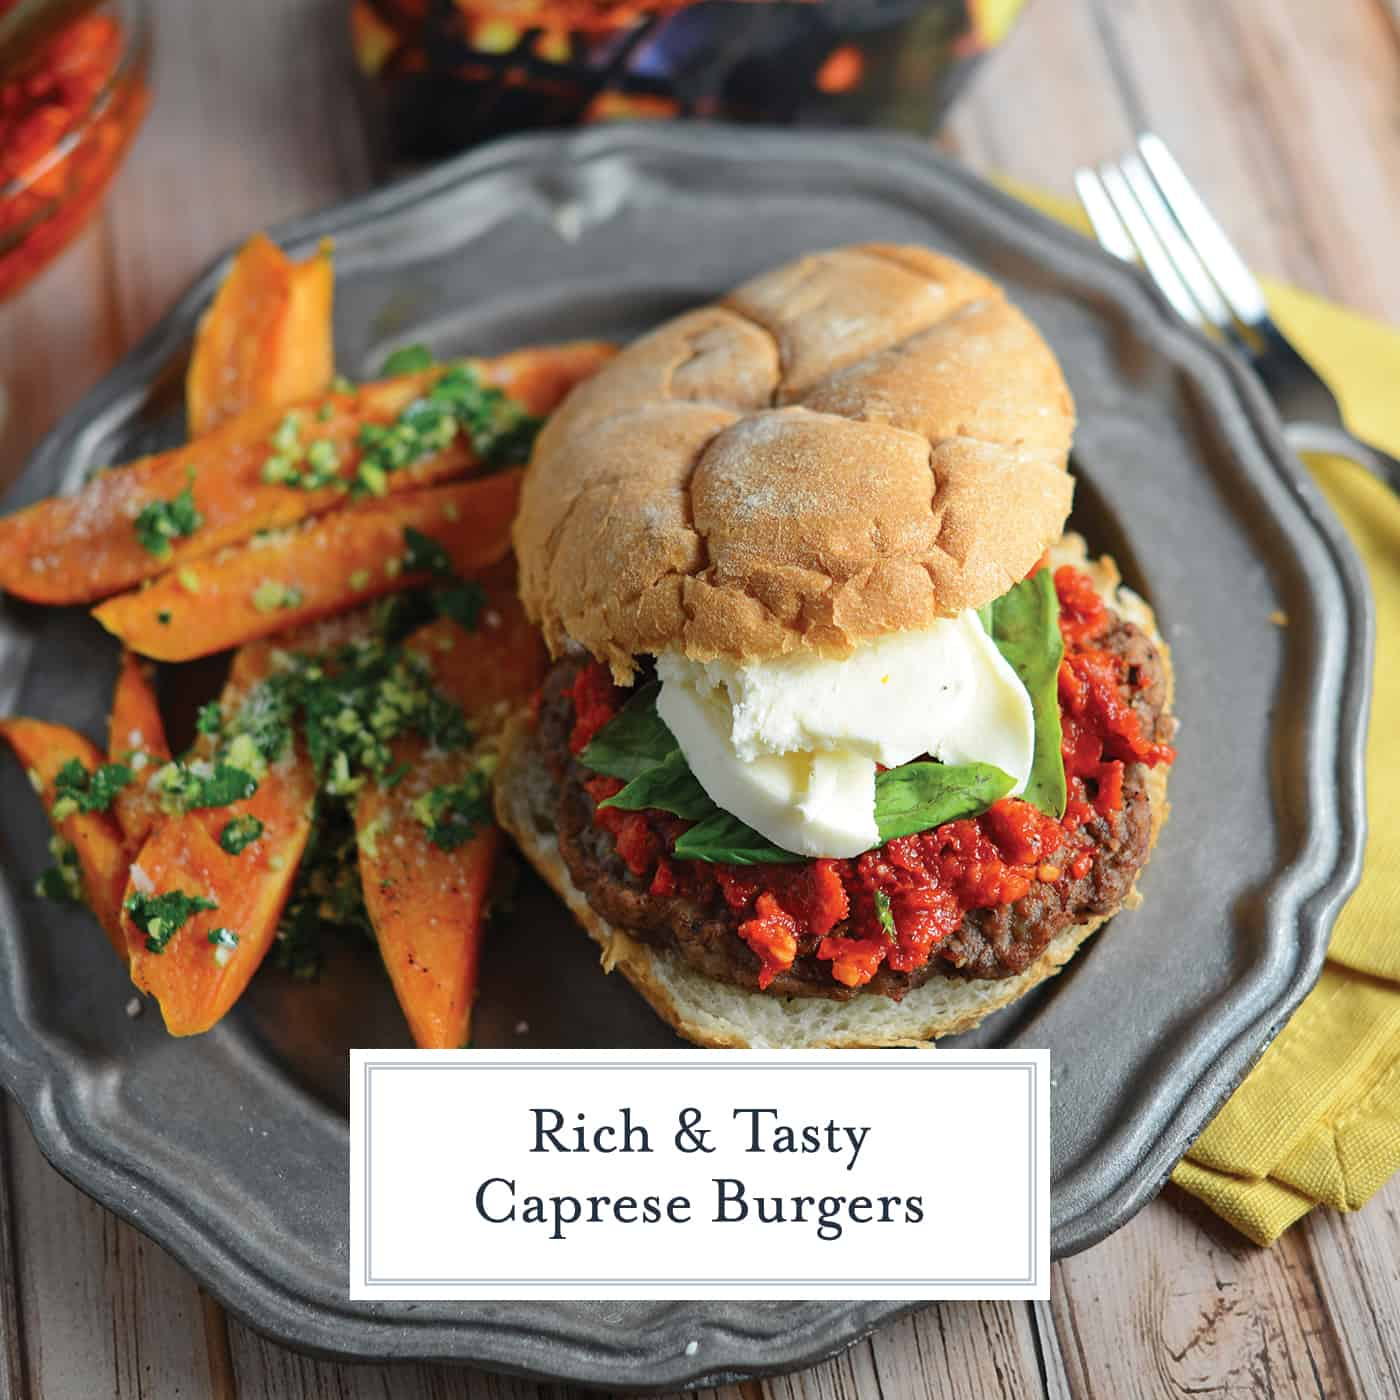 Caprese Burgers are smothered with a red pesto, fresh mozzarella and basil all on a flame-grilled burger. The best gourmet burger out there! #capreseburgers #gourmetburgers www.savoryexperiments.com